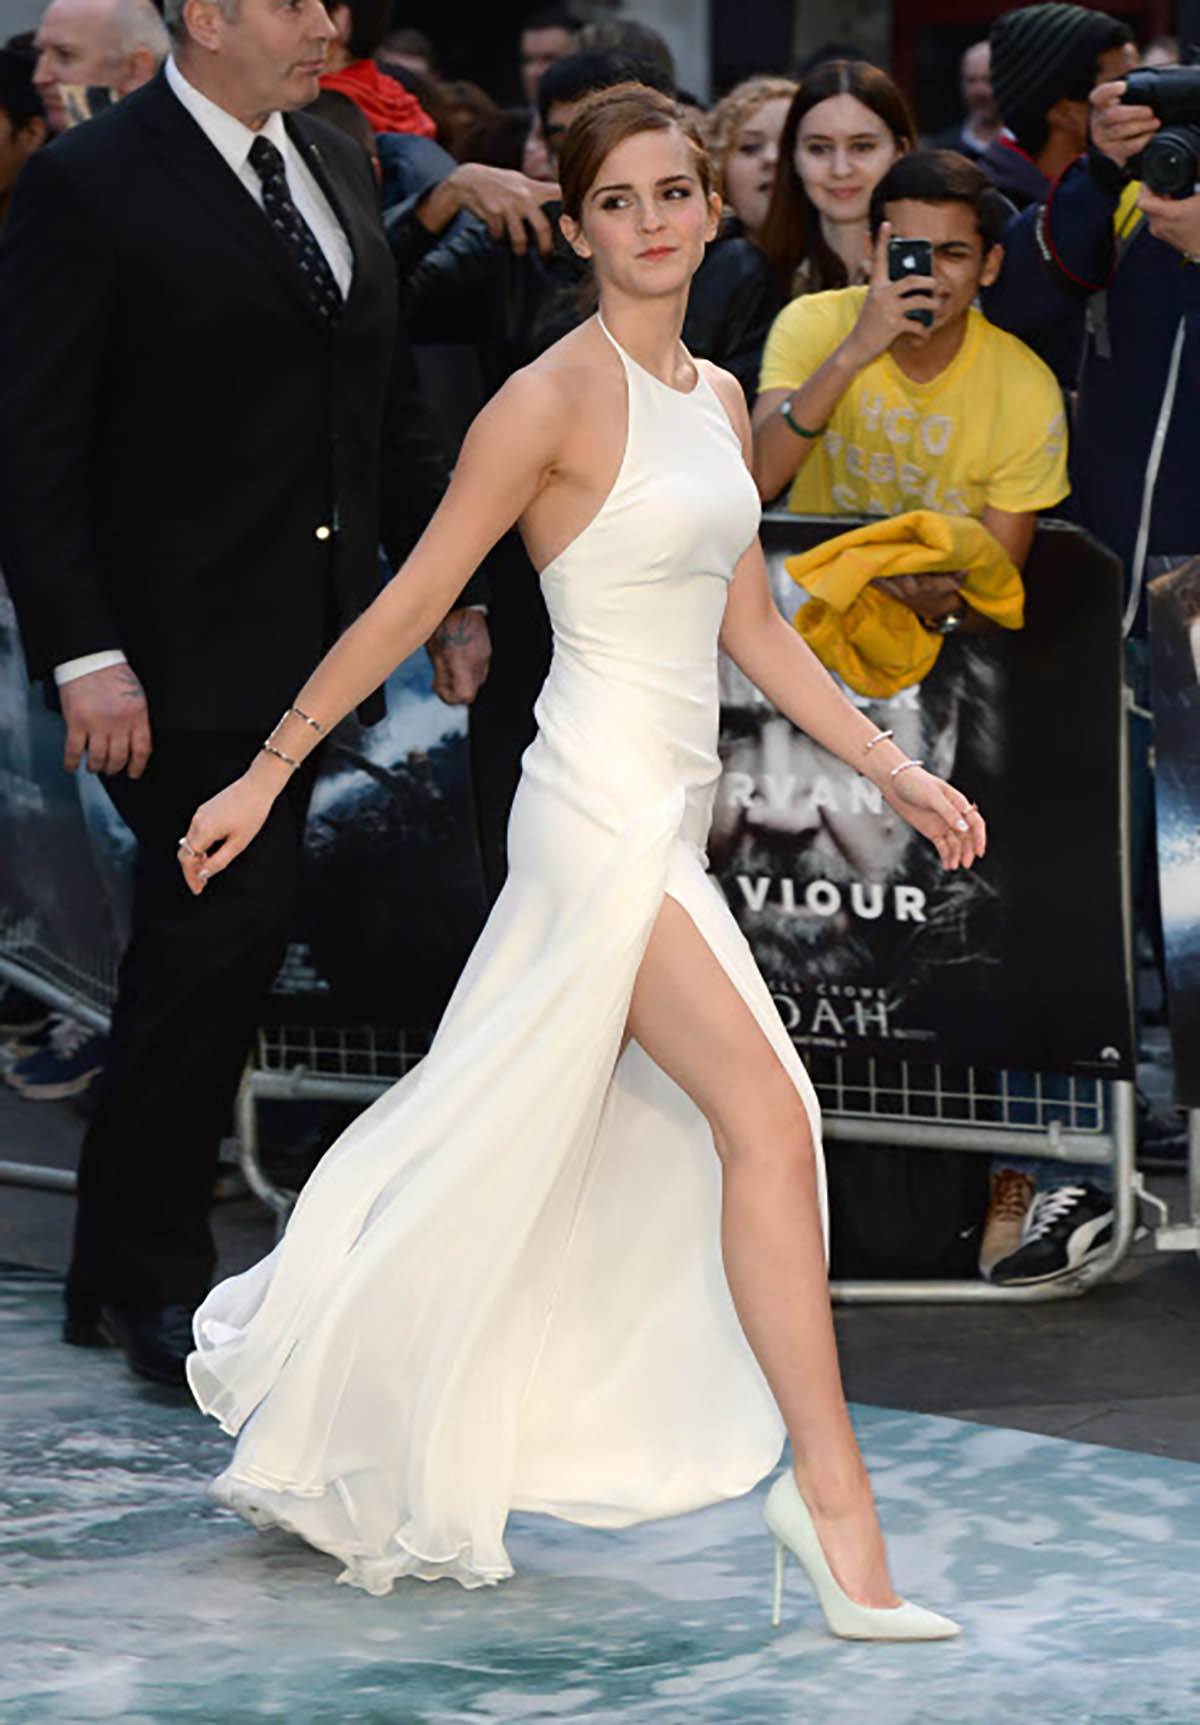 19. Actress Emma Watson attending 'Noah' UK Premiere in London. El blanco monocolor, todo un acierto